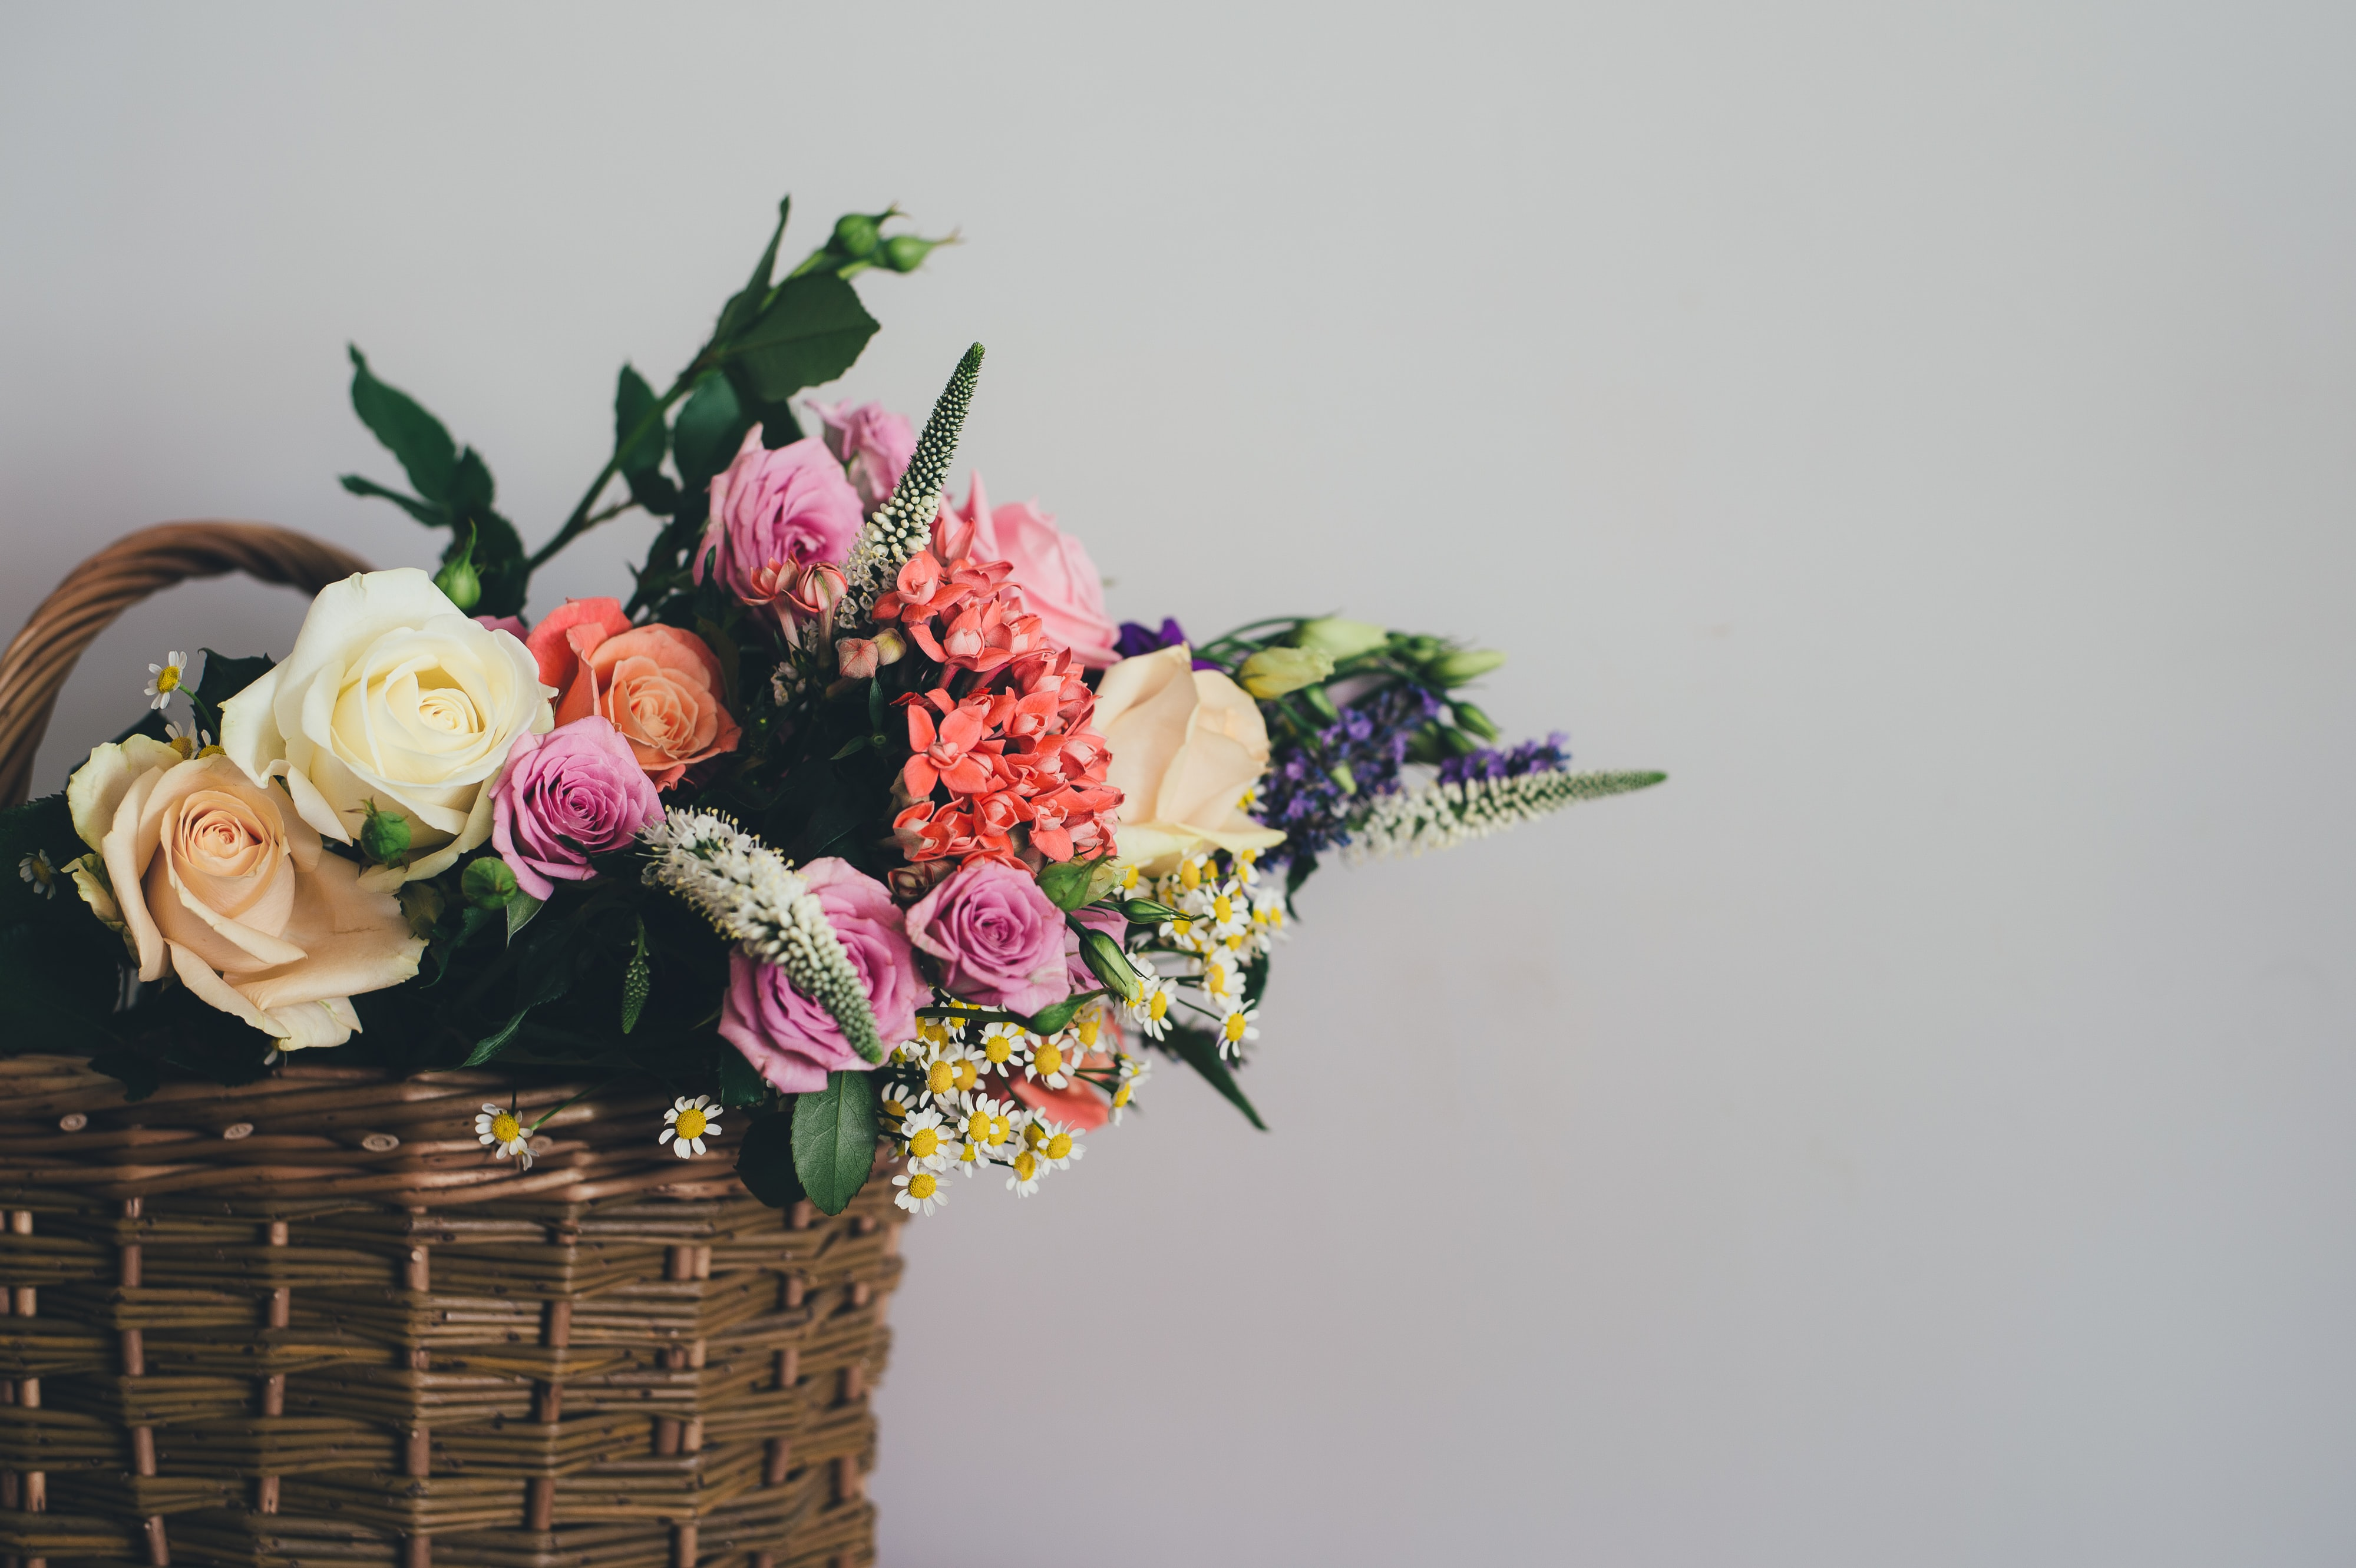 assorted-color flowers on brown wicker basket